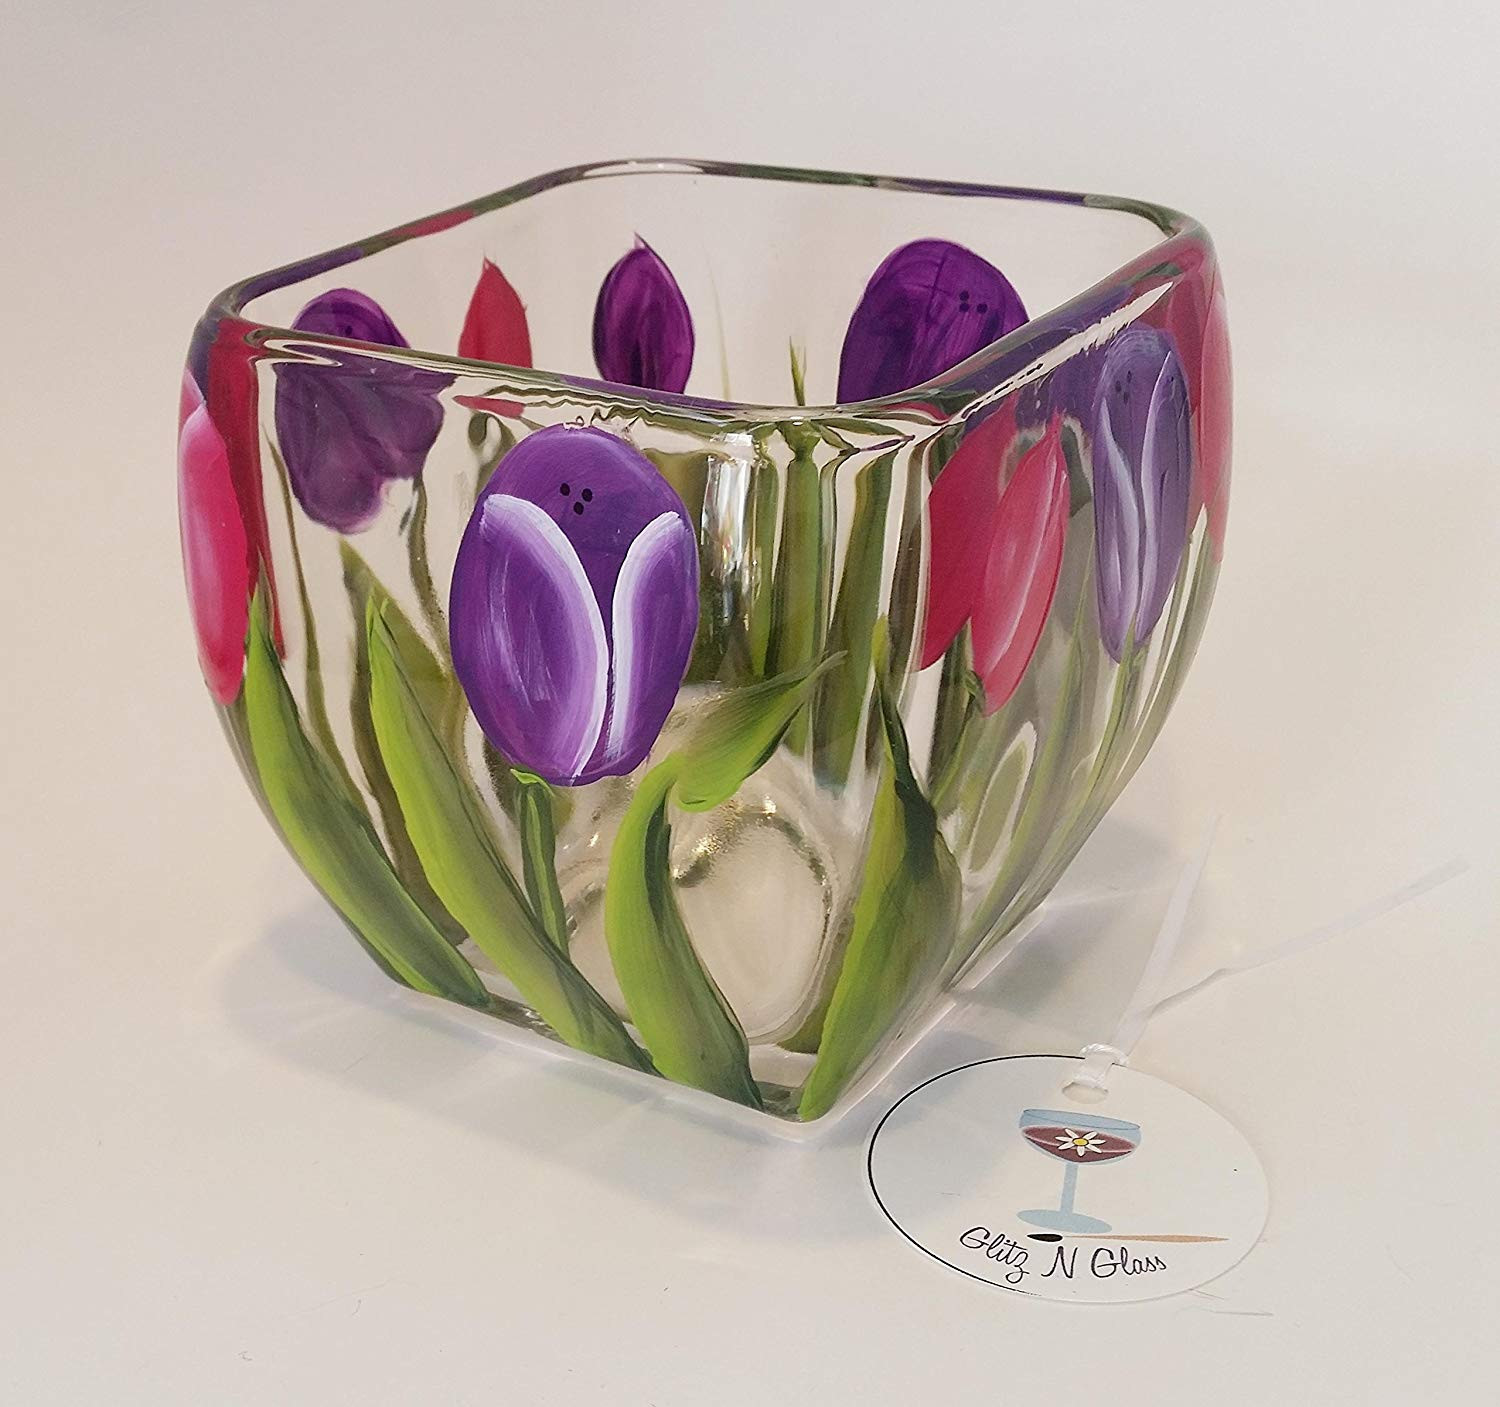 Clear Glass Tulip Vase Of Amazon Com Hand Painted Glass Square Bowl Pink and Purple Tulips Pertaining to Amazon Com Hand Painted Glass Square Bowl Pink and Purple Tulips Handmade